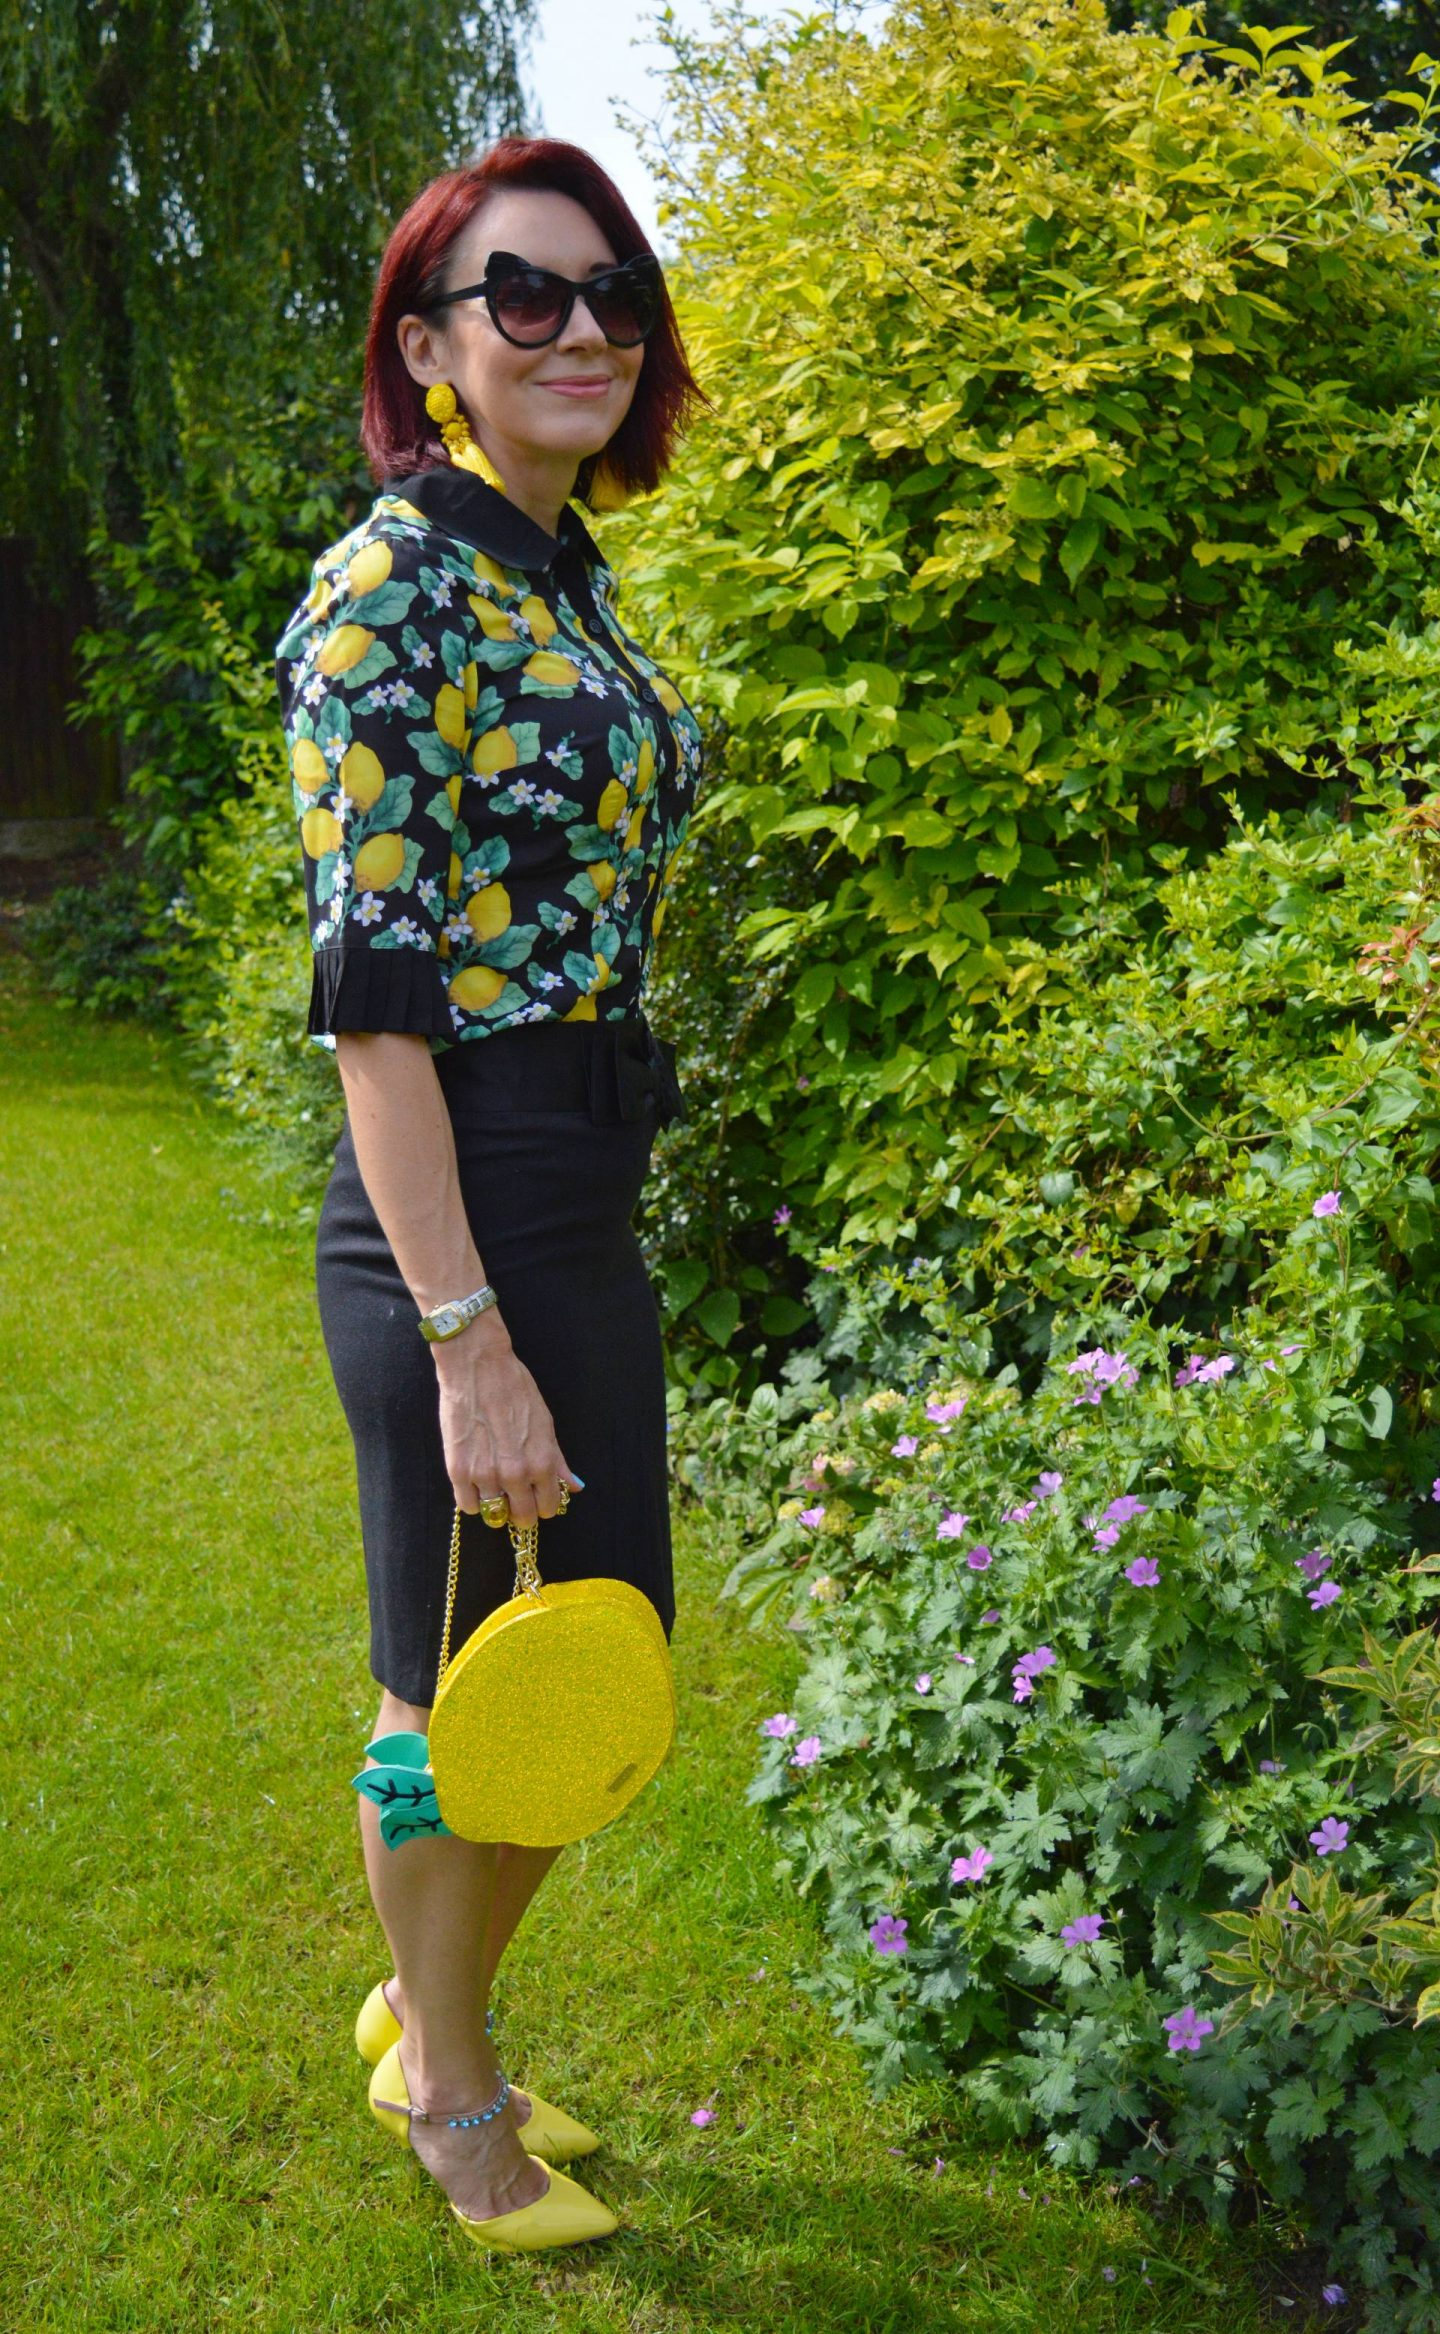 When Life Gives You Lemons, Hell Bunny lemon print shirt, Skinny Dip lemon bag